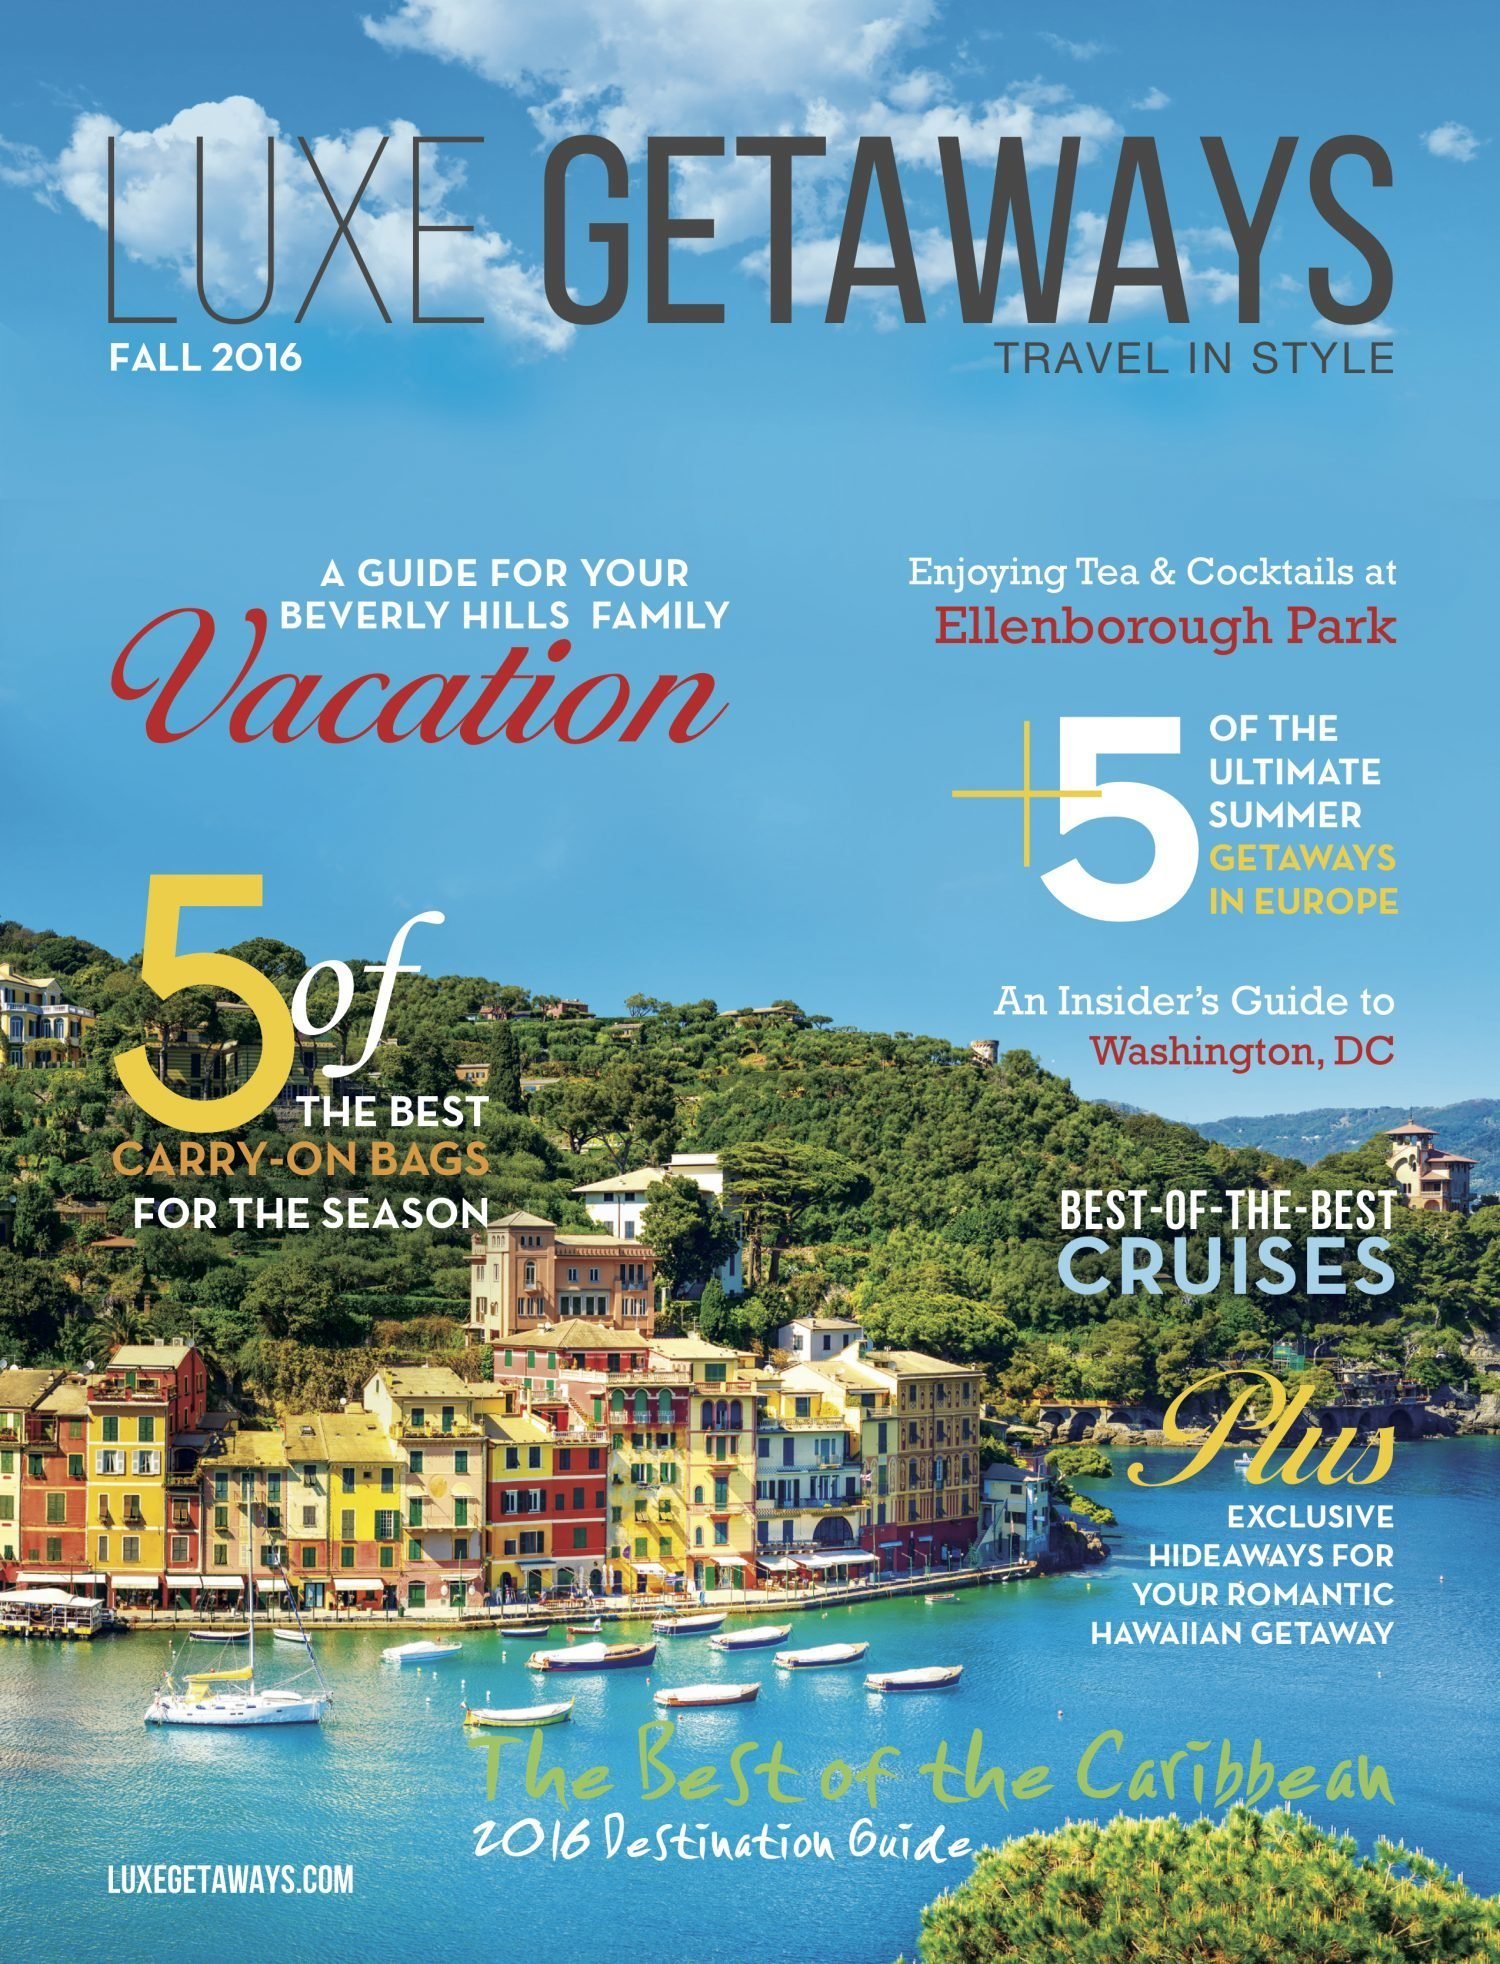 luxegetaways_fall16_cover